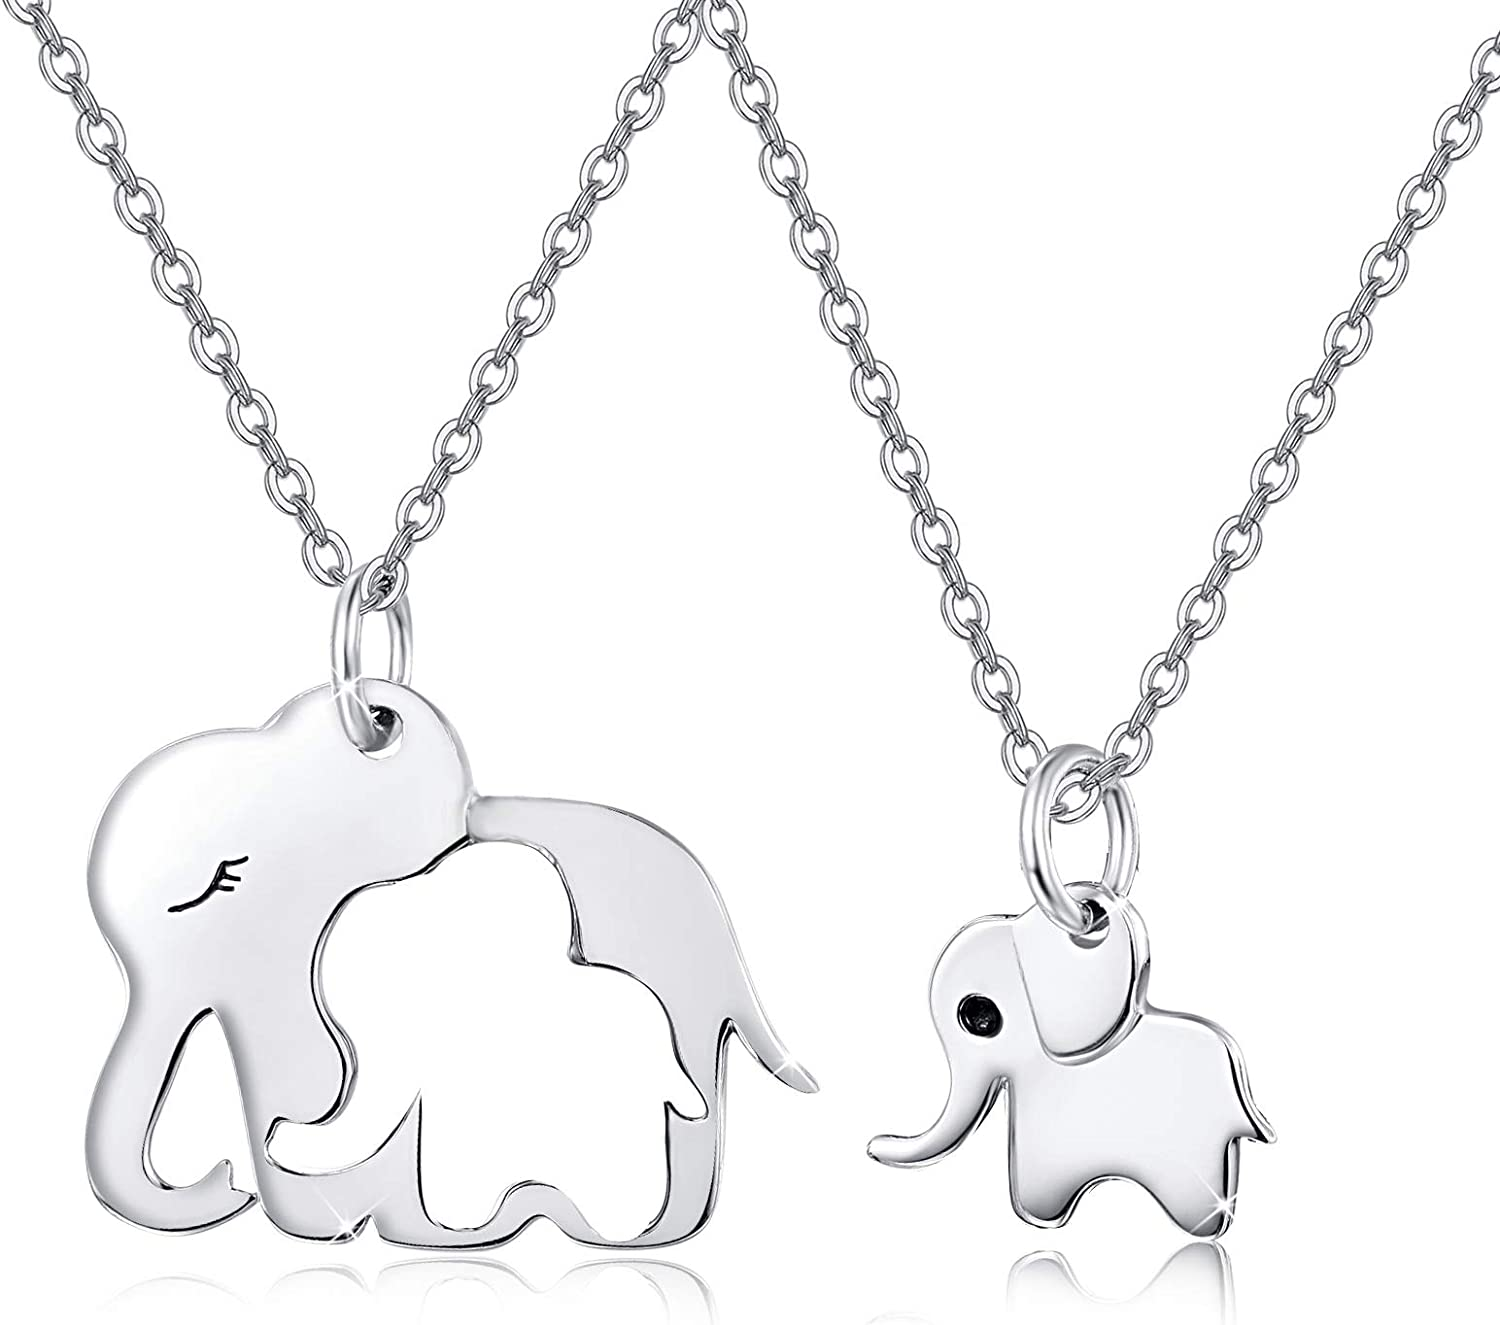 Silver elephant jewelry set